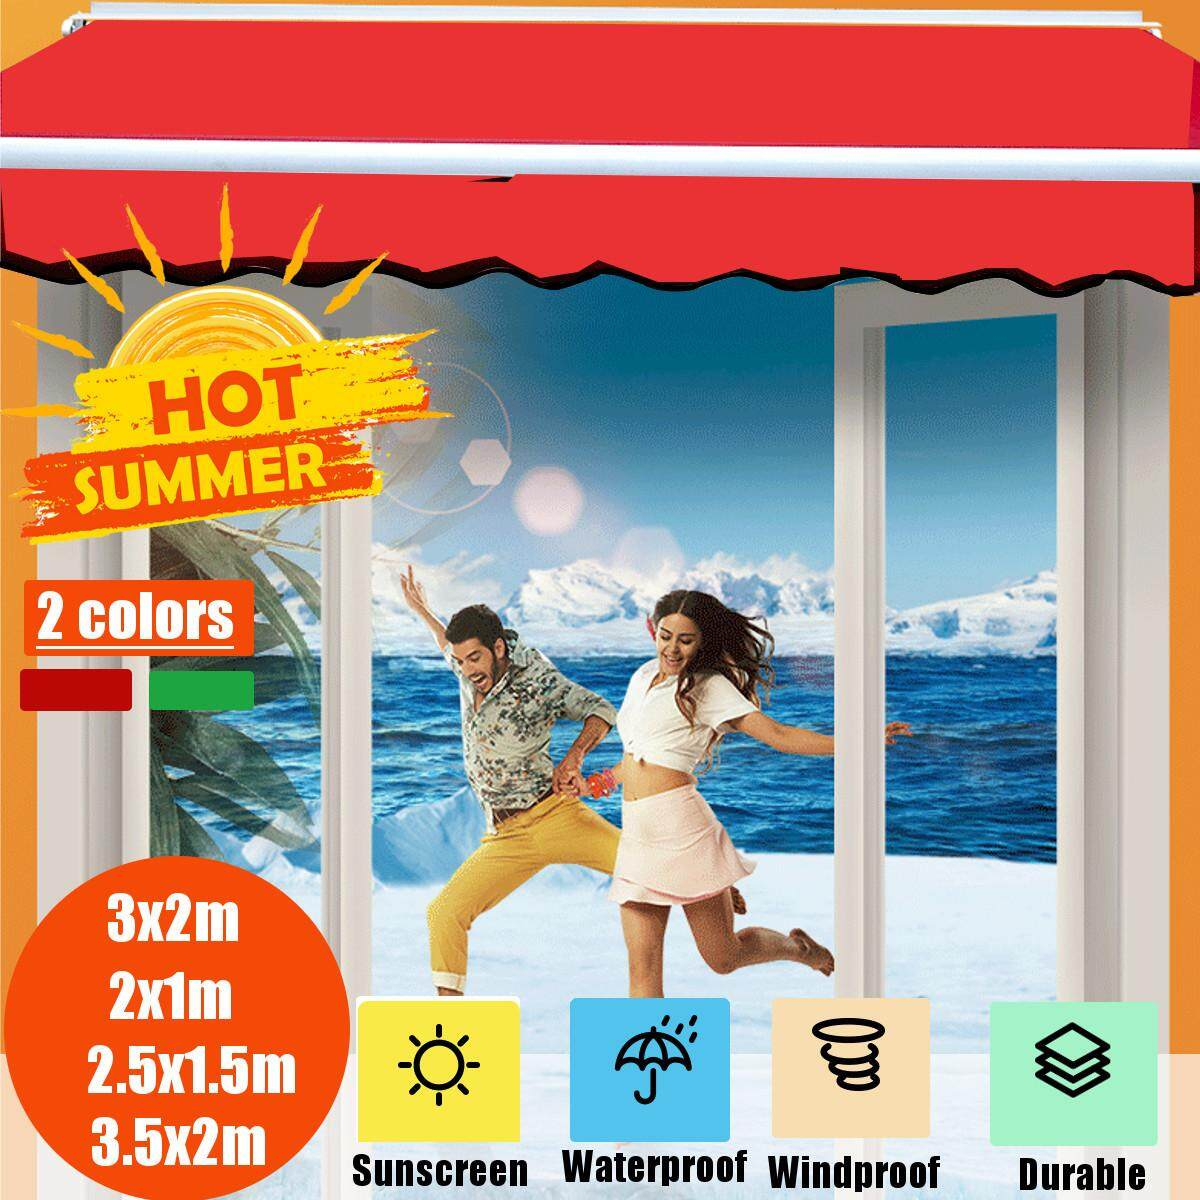 Sunshade Sail Shop Retractable Canopy Outdoor Folding Waterprooof Awning Cover Sunscreen